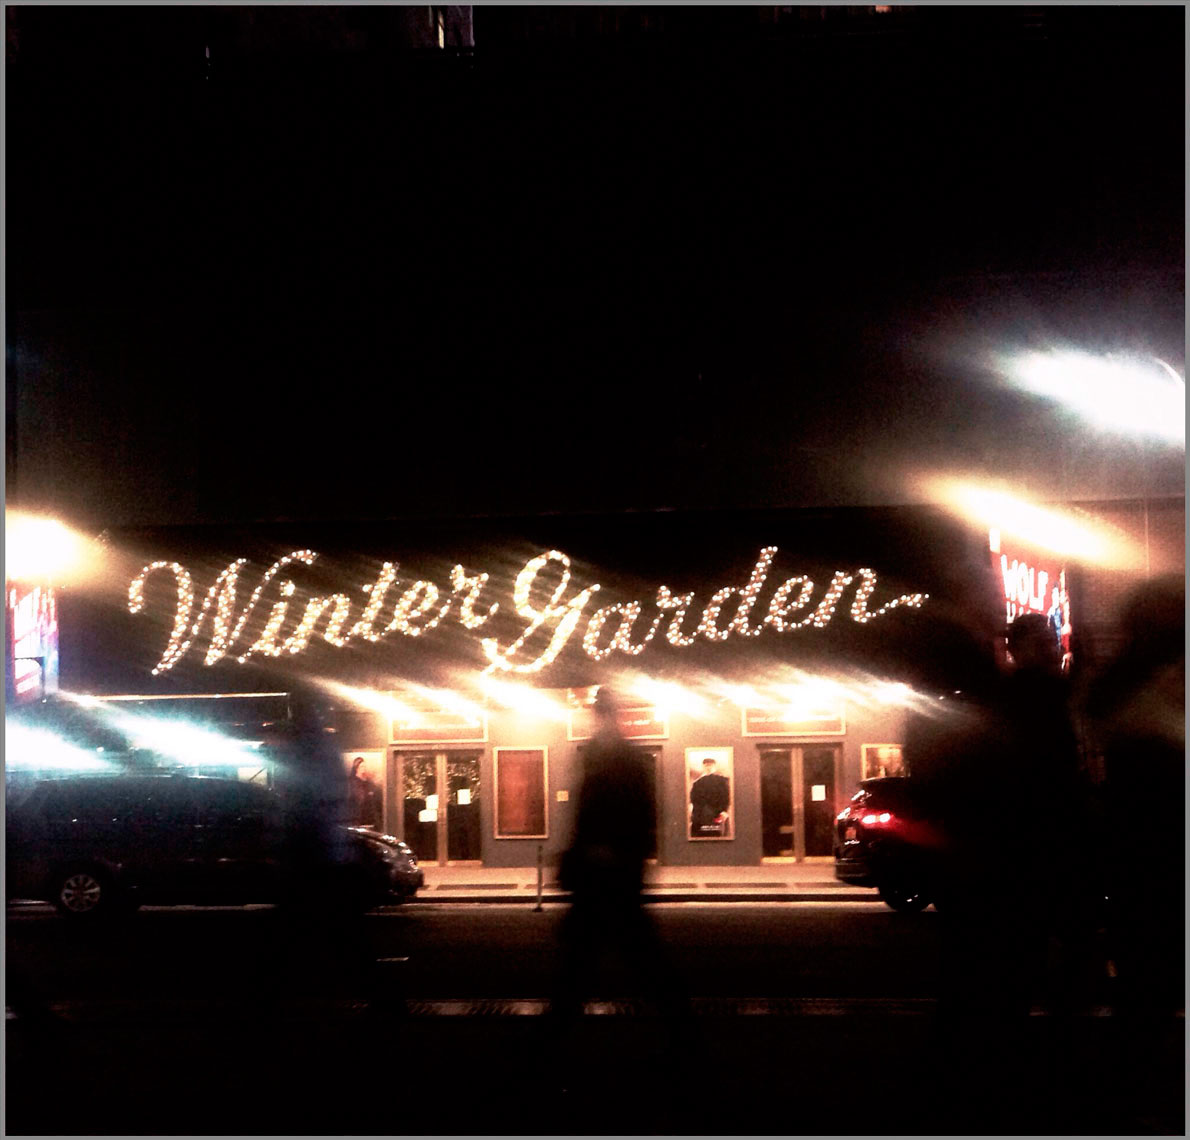 Winter Garden Theatre Times Square